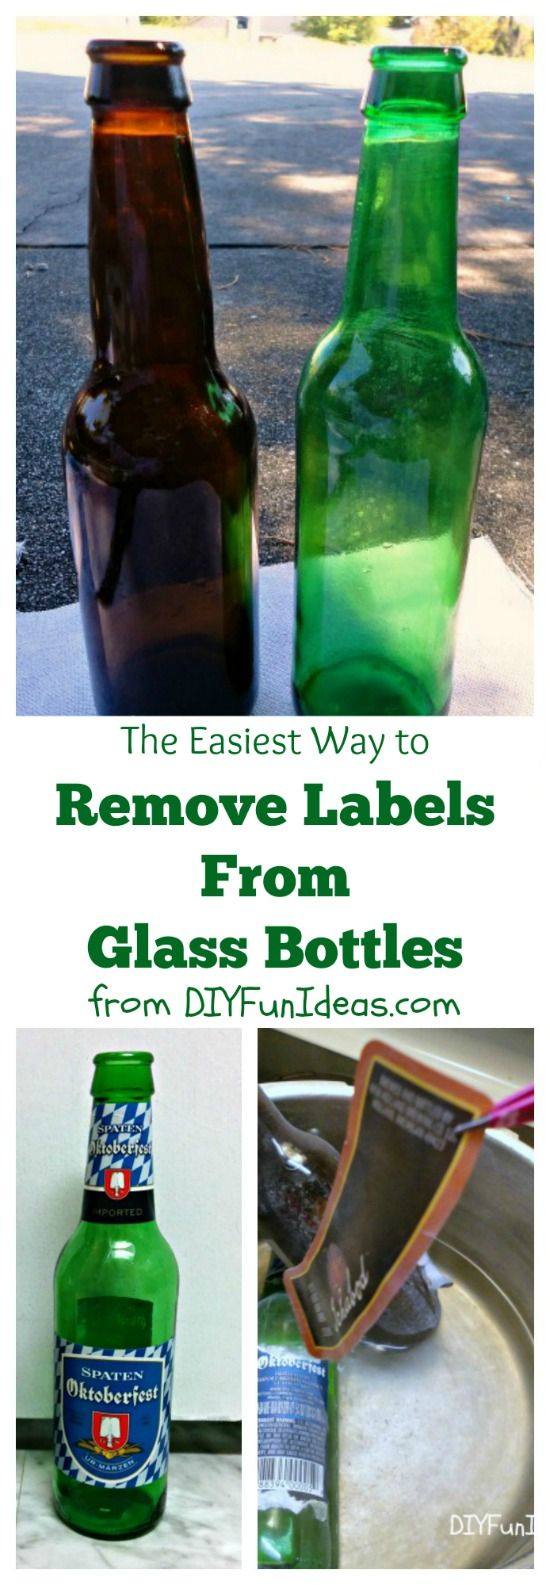 THE EASIEST WAY TO REMOVE LABELS FROM GLASS BOTTLES!!!!